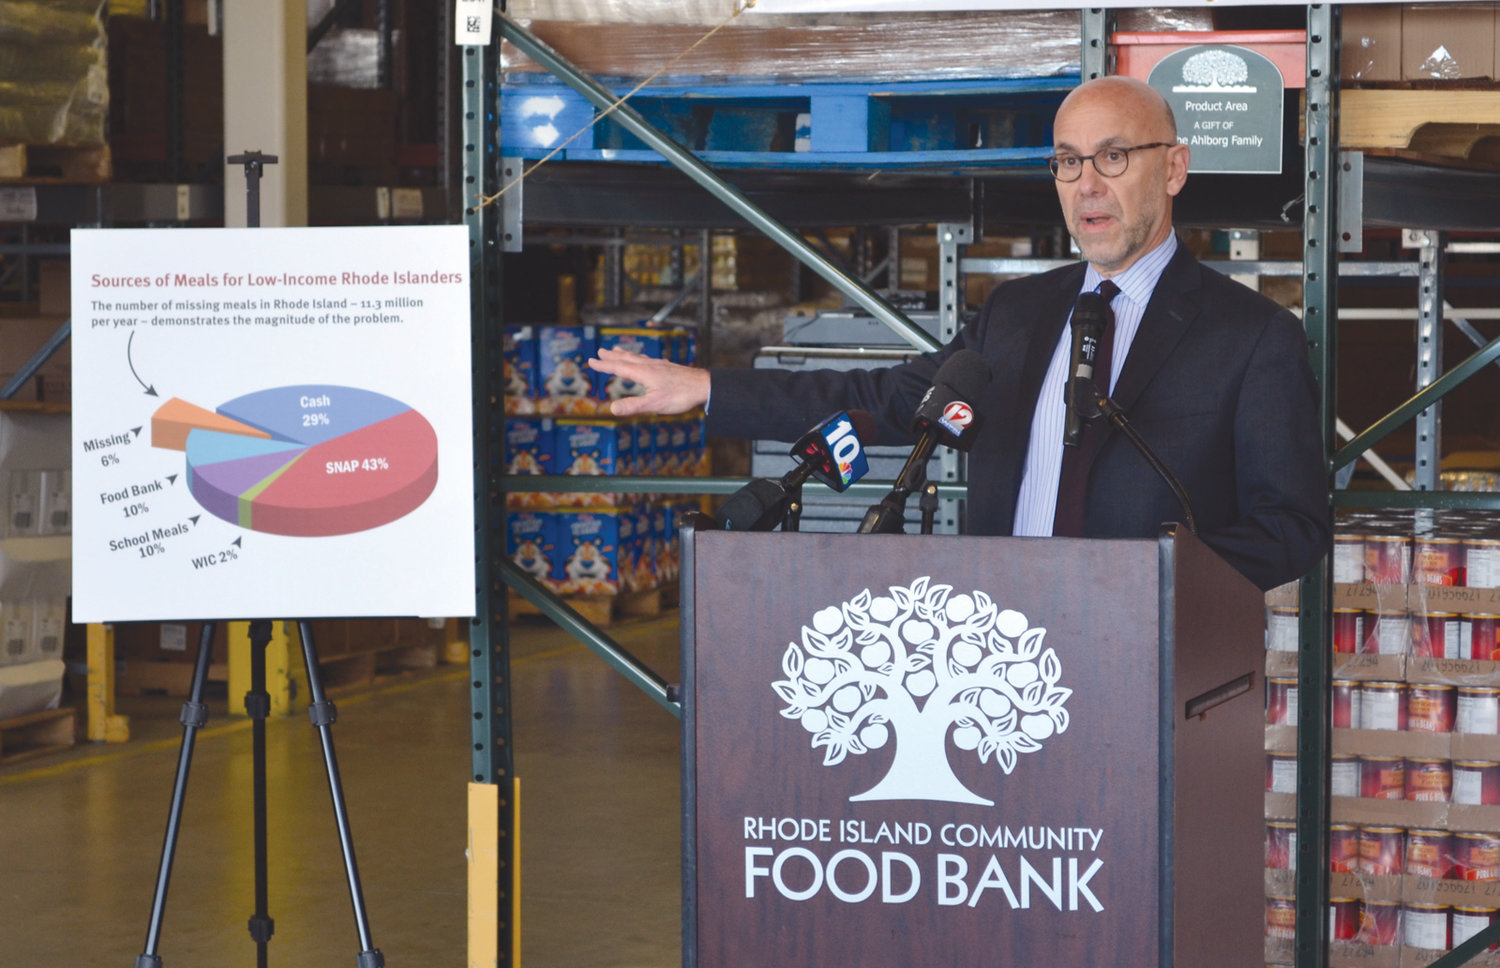 SHOWING THE NUMBERS: Rhode Island Community Food Bank CEO Andrew Schiff gestures to a pie chart showing that low-income Ocean State residents miss out on 11.3 million meals every year.